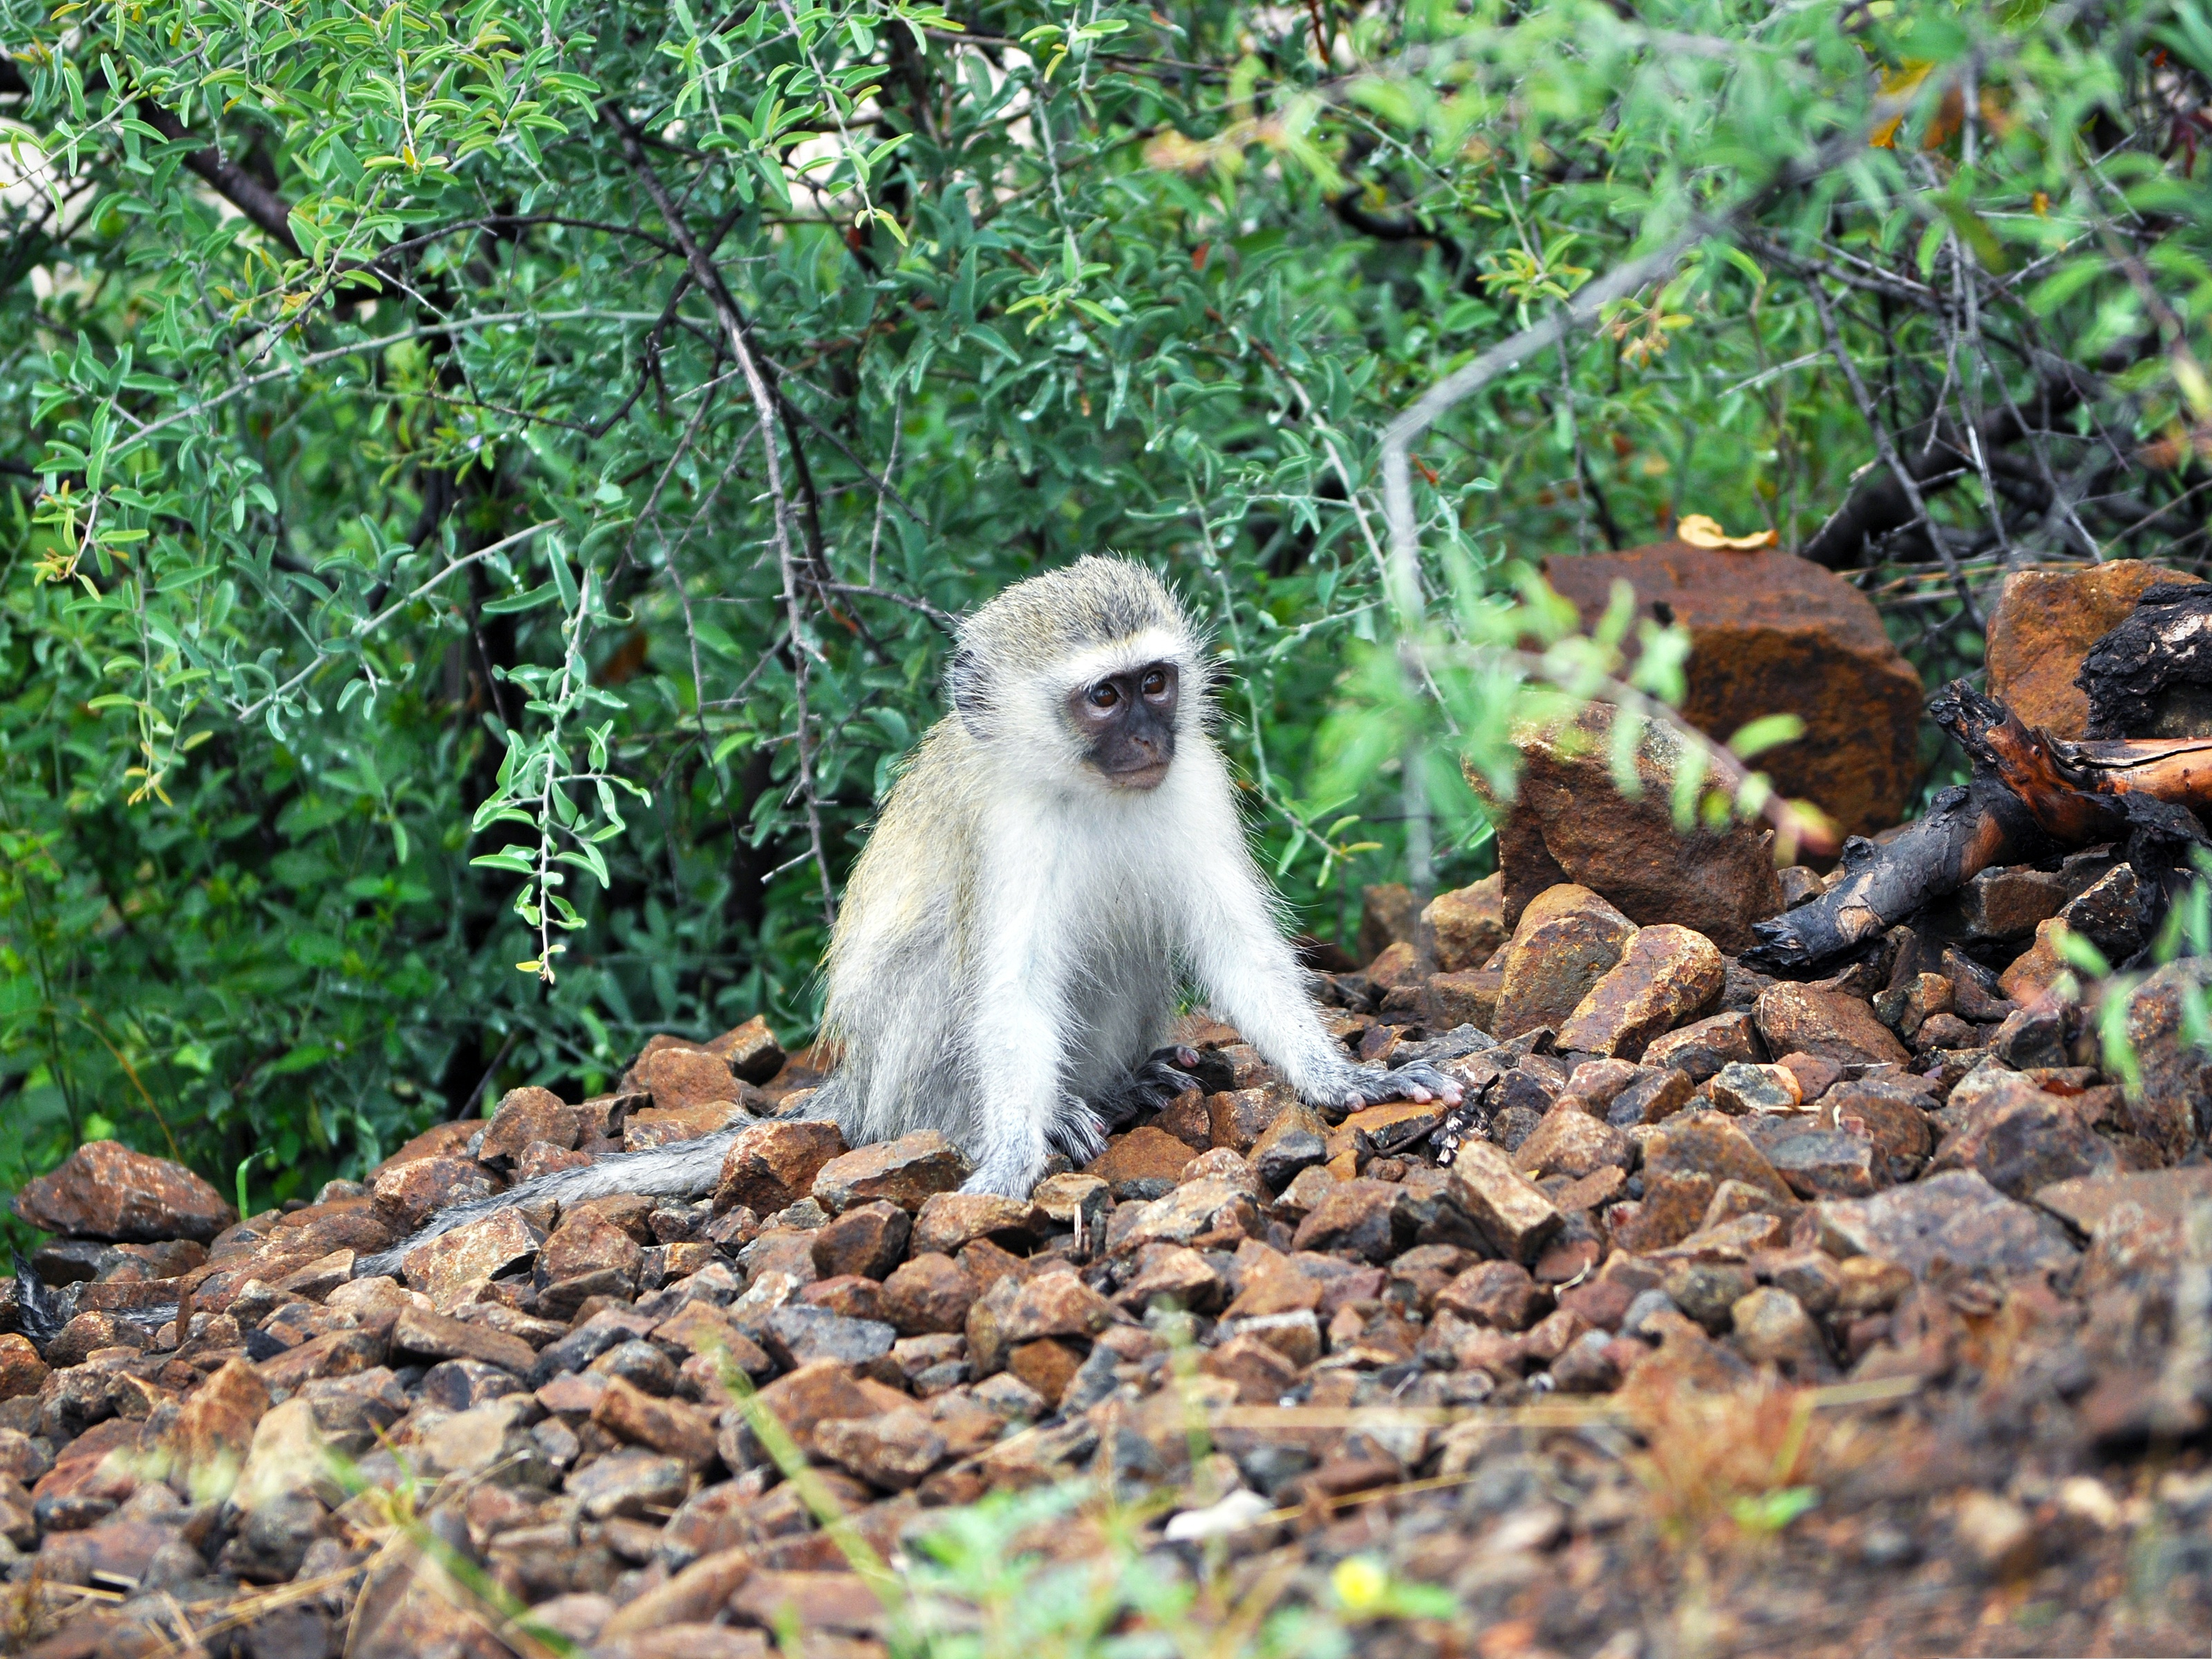 click to free download the wallpaper--Baby Vervet Monkey, Cute Baby in Attentive Eyesight, What is Over There? 3200X2400 free wallpaper download